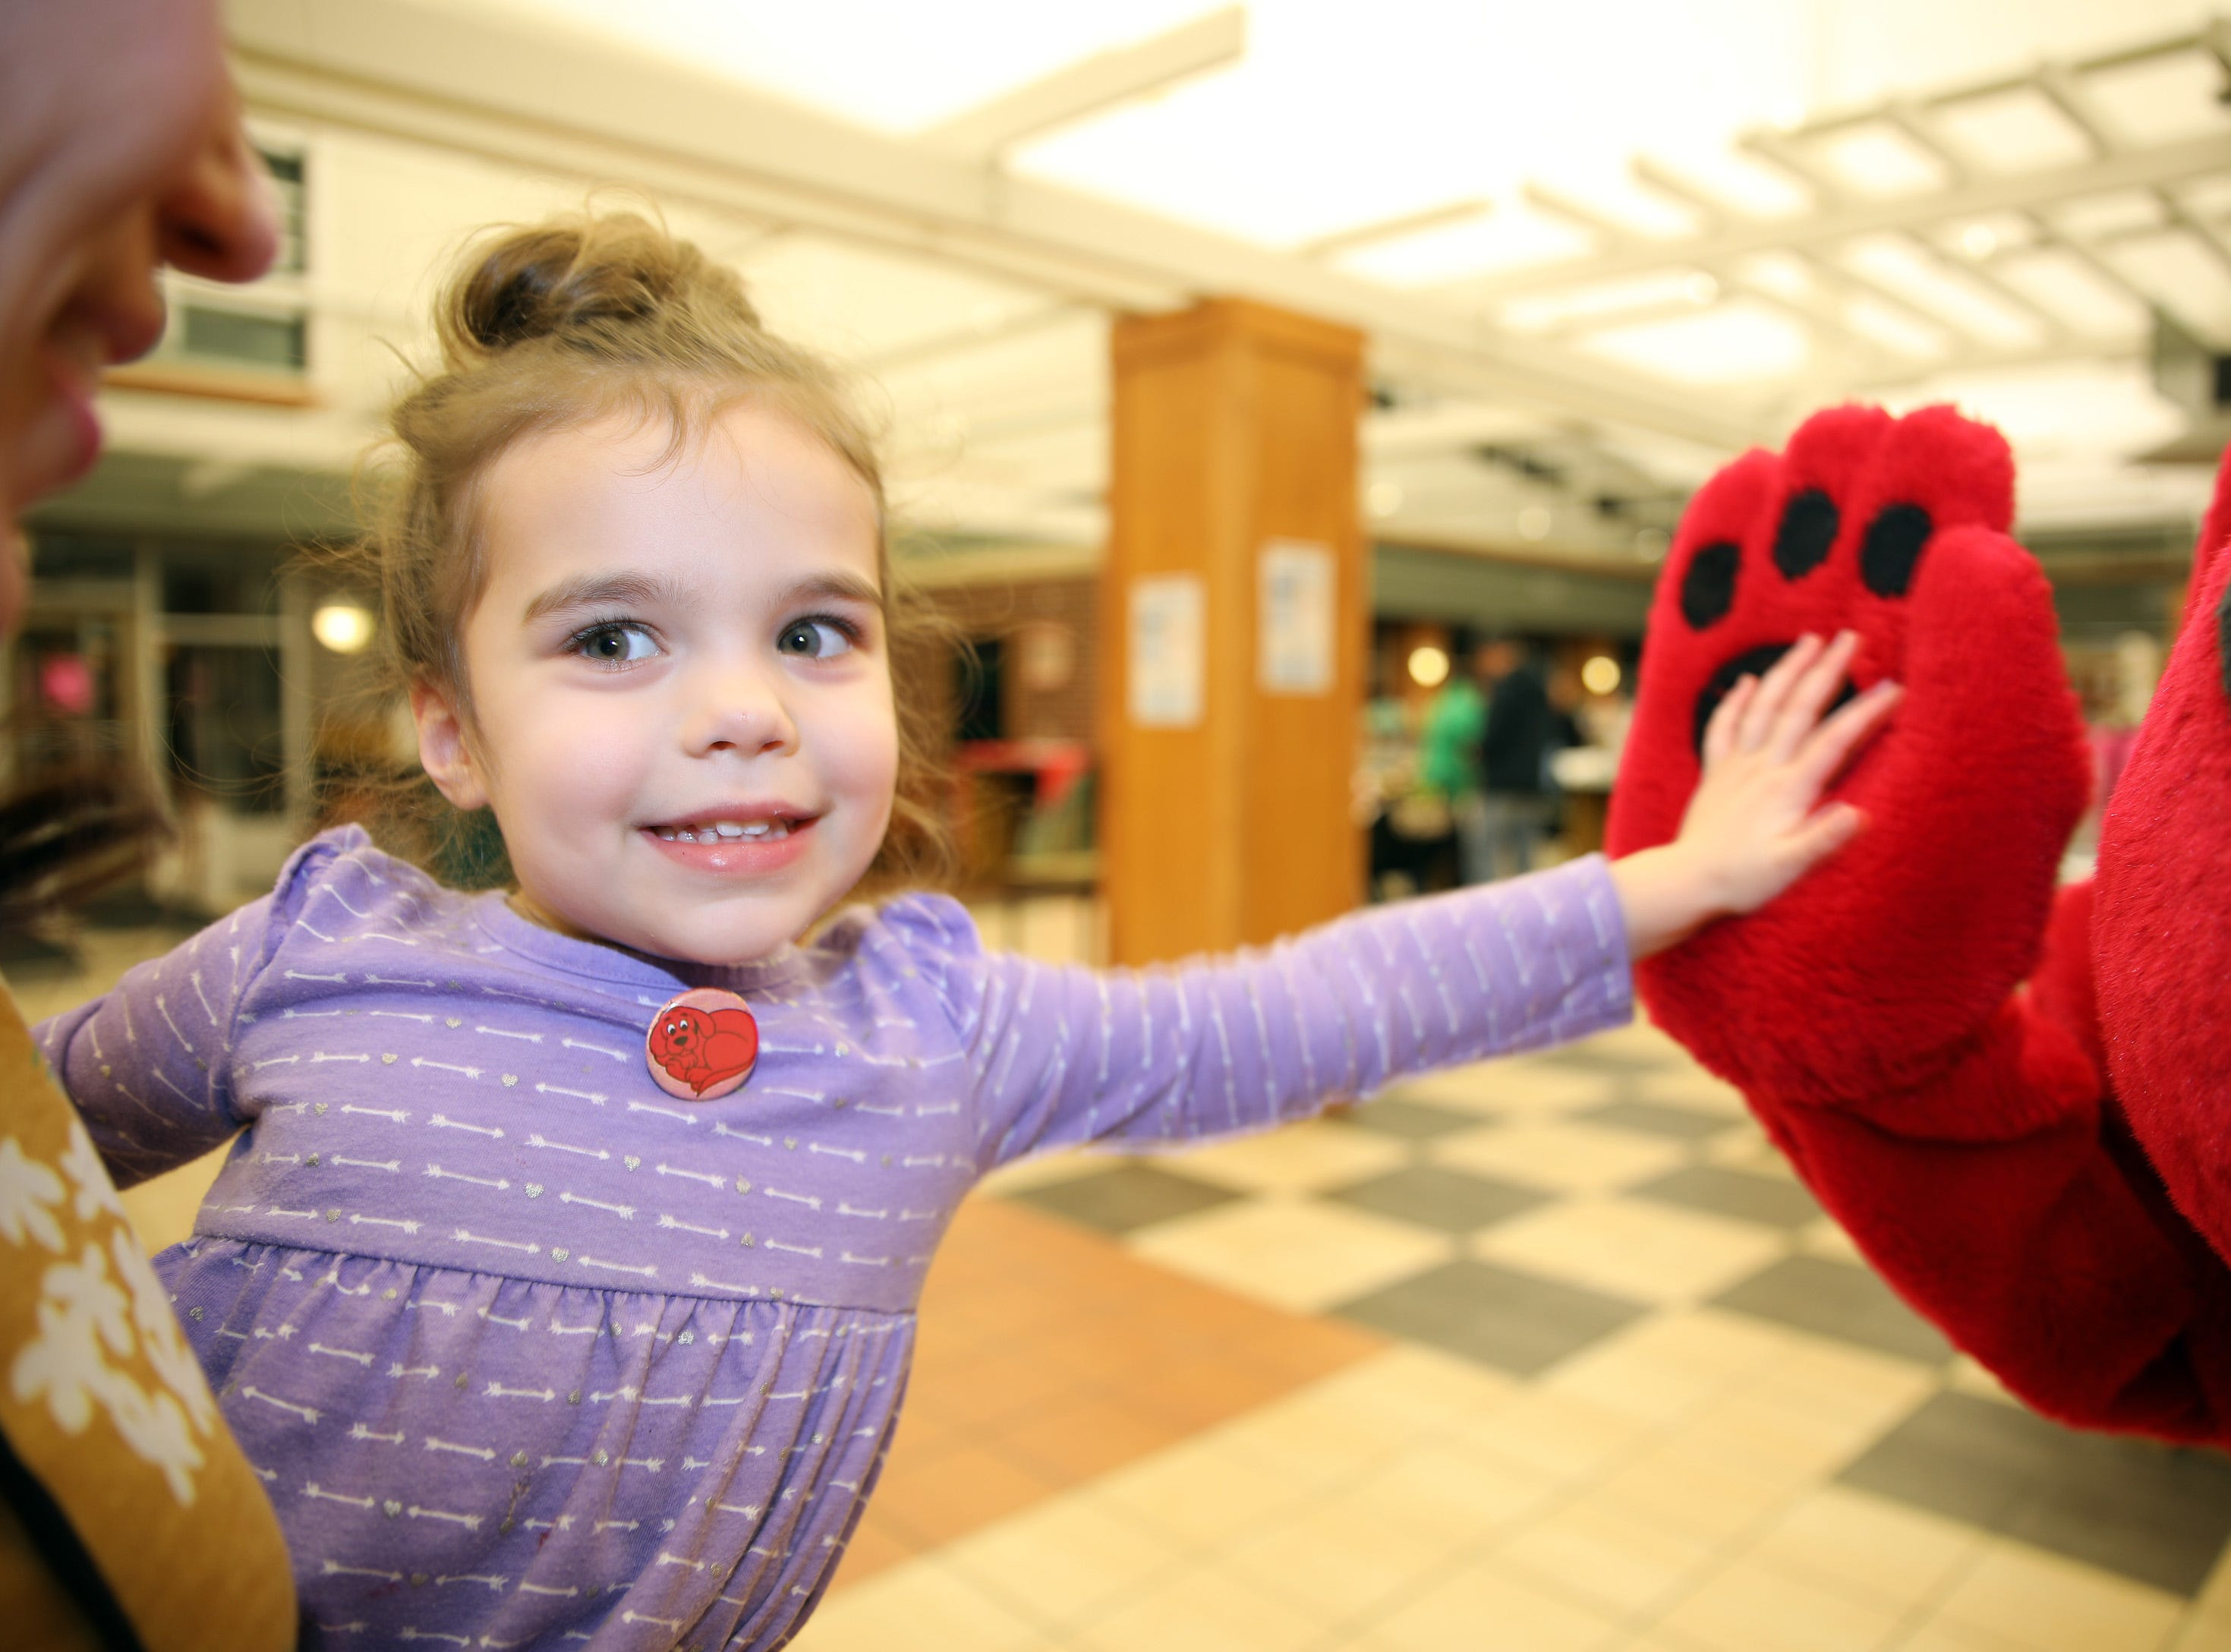 Lilly Marusiak, 3, of Ankeny gets a high-five from Clifford the Big Red Dog during his birthday party at Kirkendall Public Library in Ankeny on Tuesday, Feb. 5, 2019.